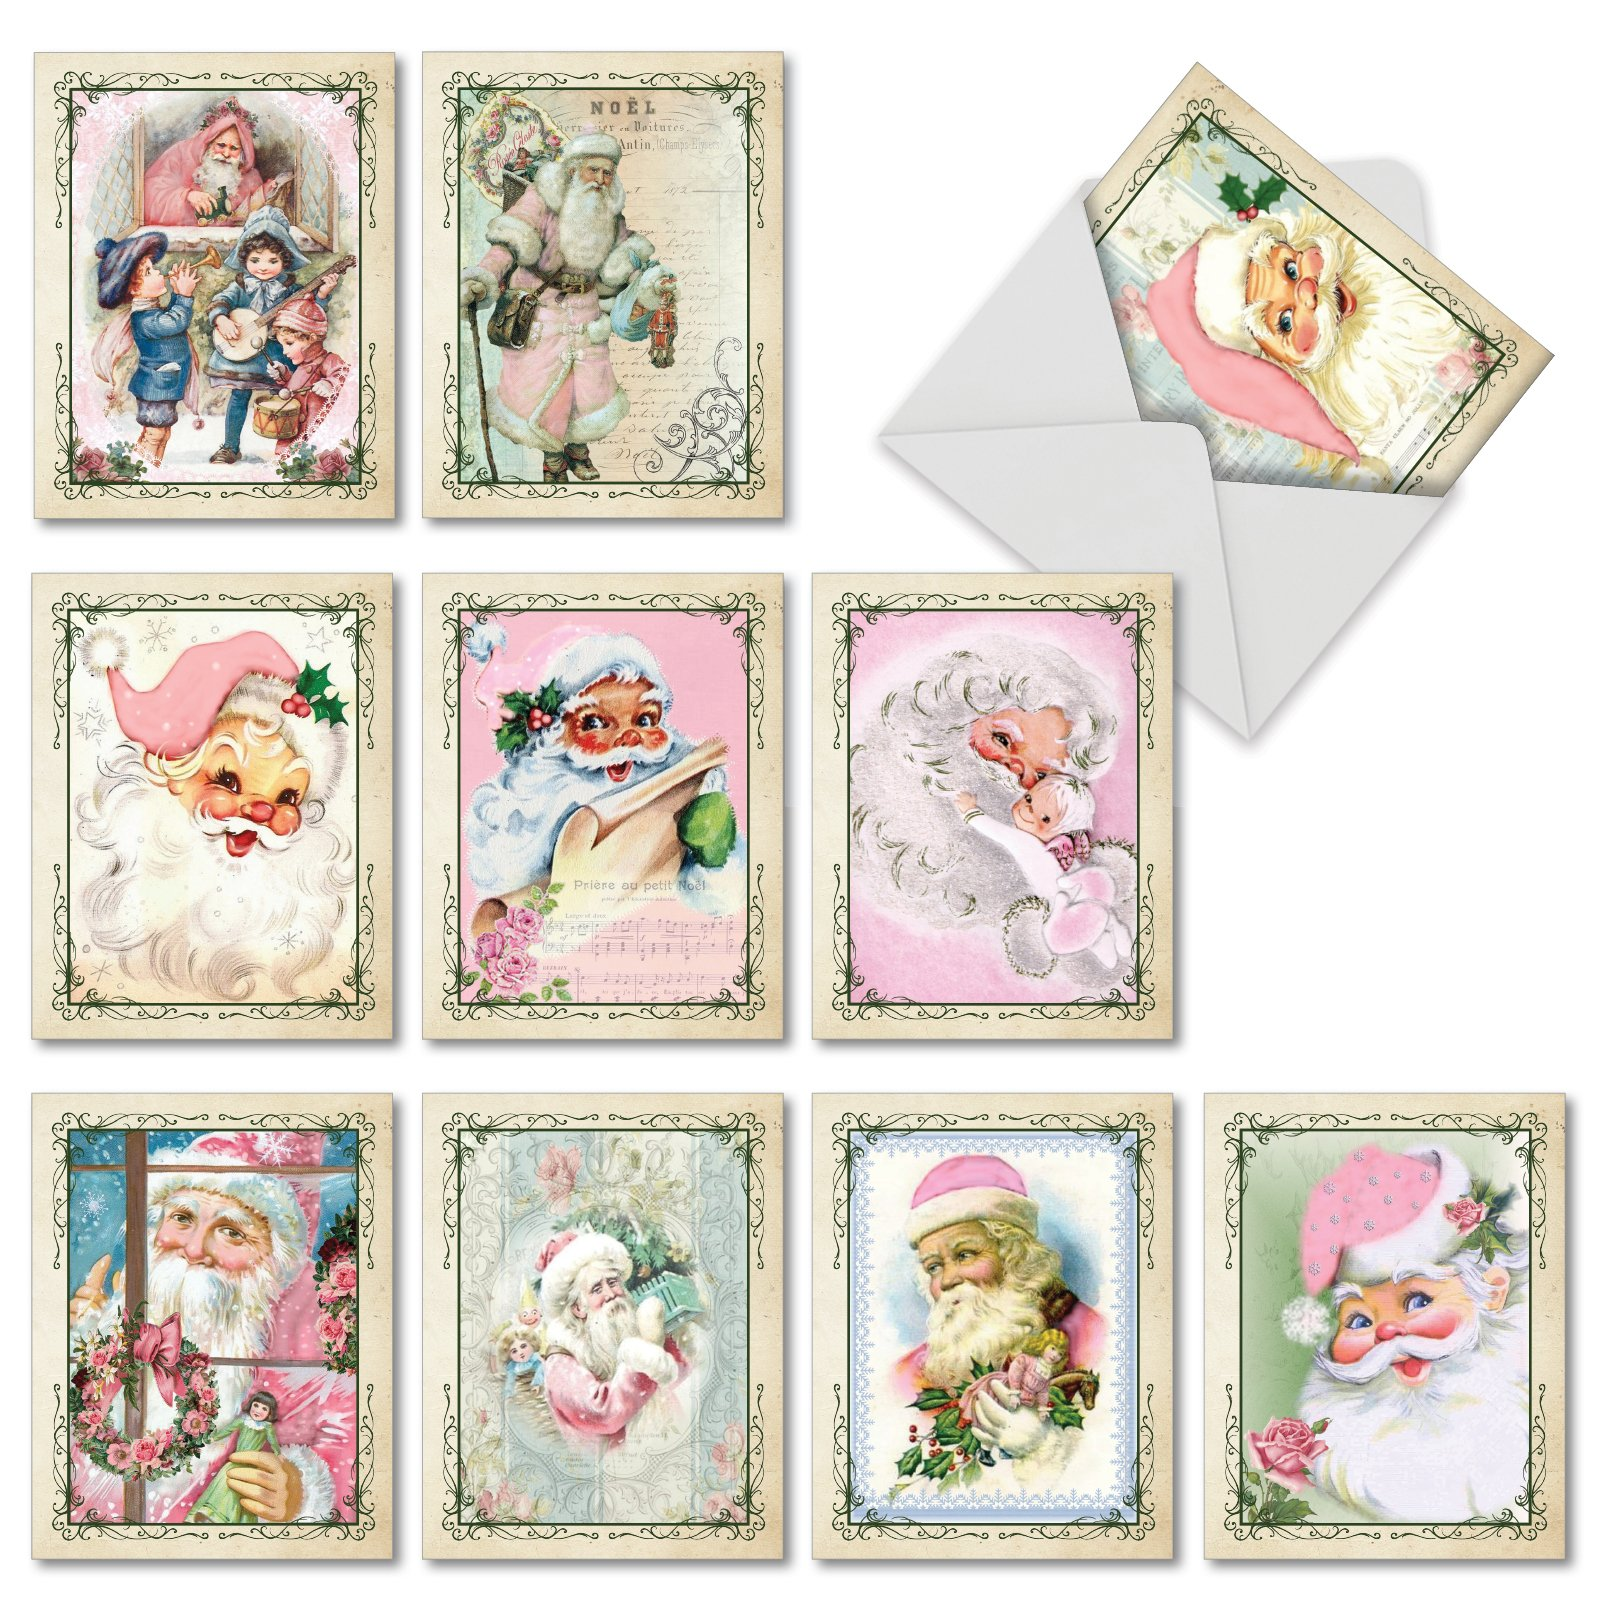 10 Assorted 'Pink Kringle' Christmas Cards with Envelopes 4 x 5.12 inch, Boxed Season's Greetings Cards with Vintage Santas in Pink Suits, Festive Stationery for Kids, Adults, Family M6695XSG